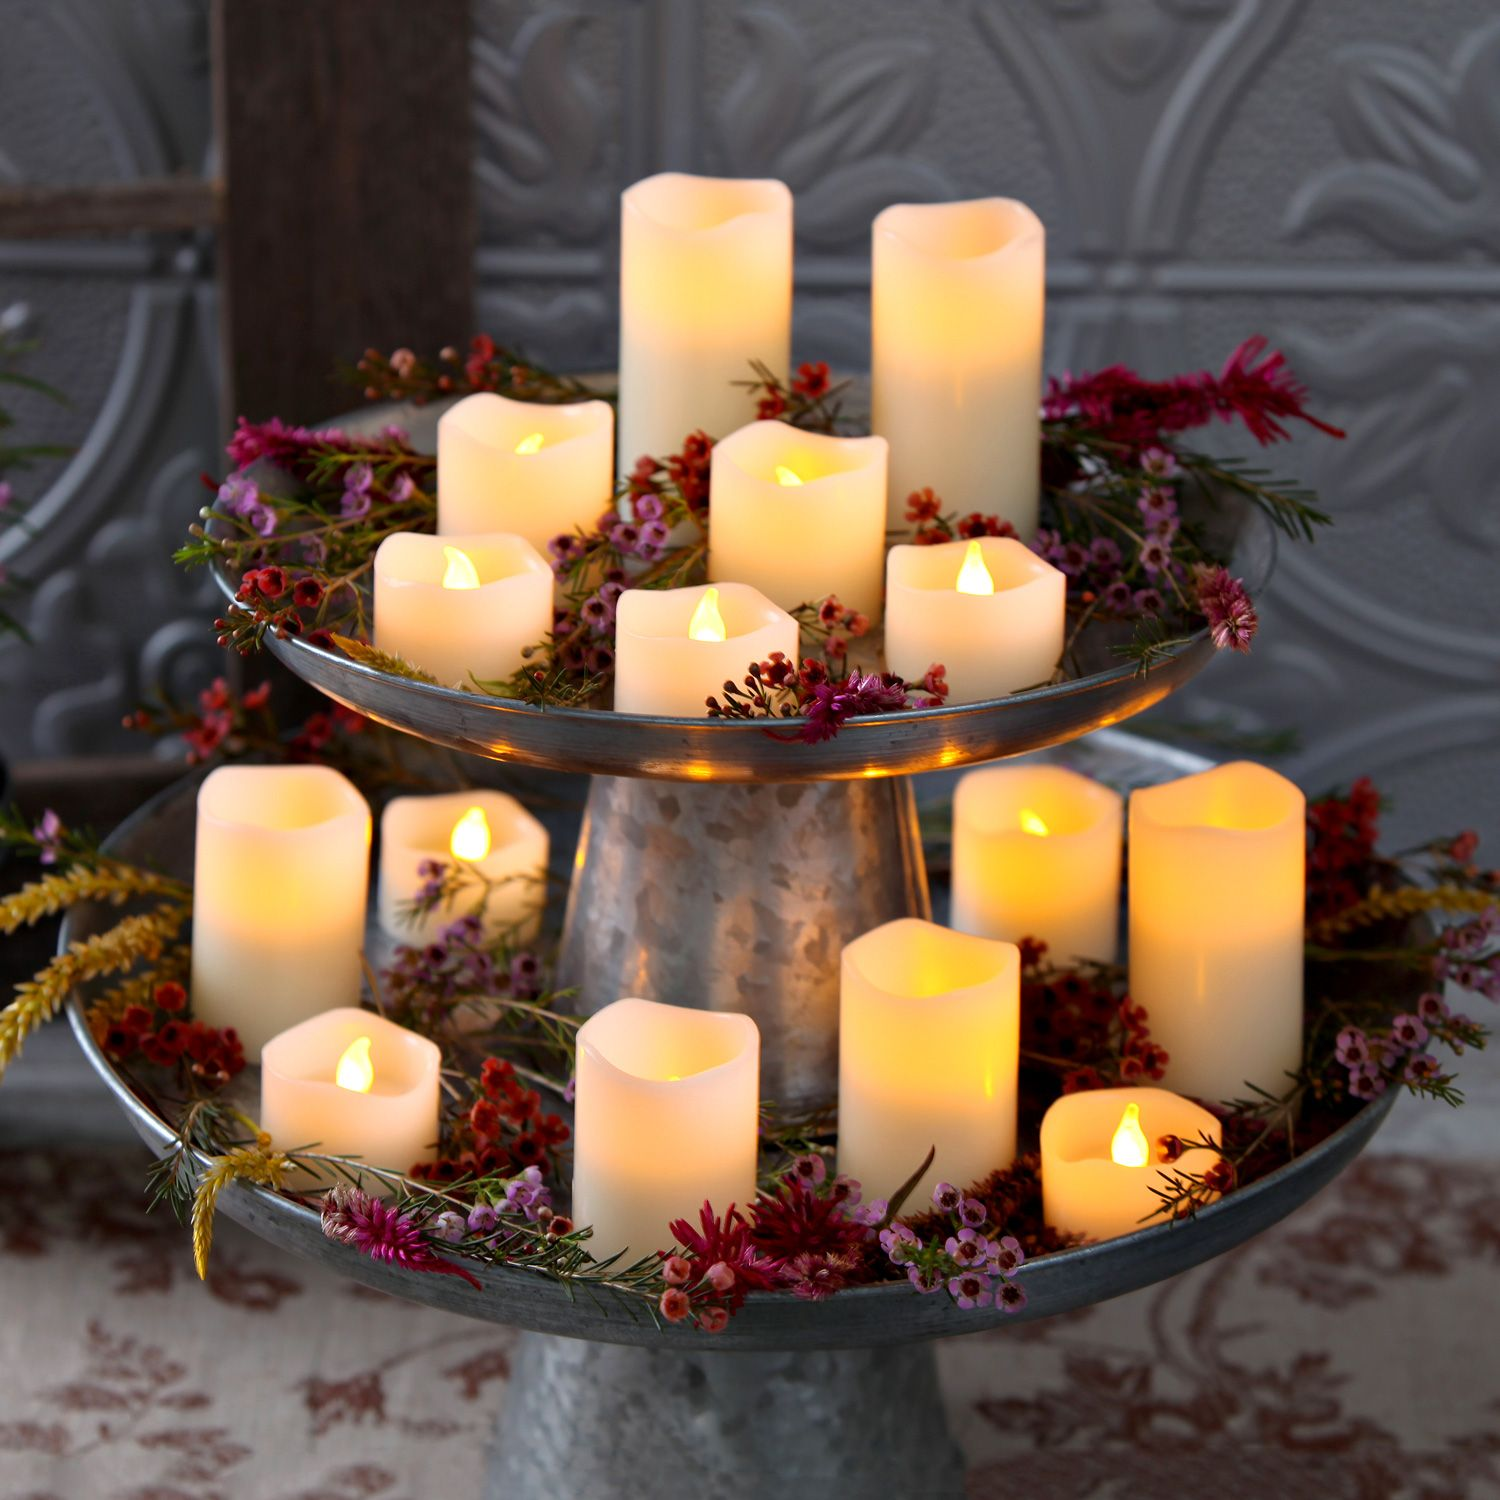 Warm White Melted Edge Flameless Ivory Wax Votives With